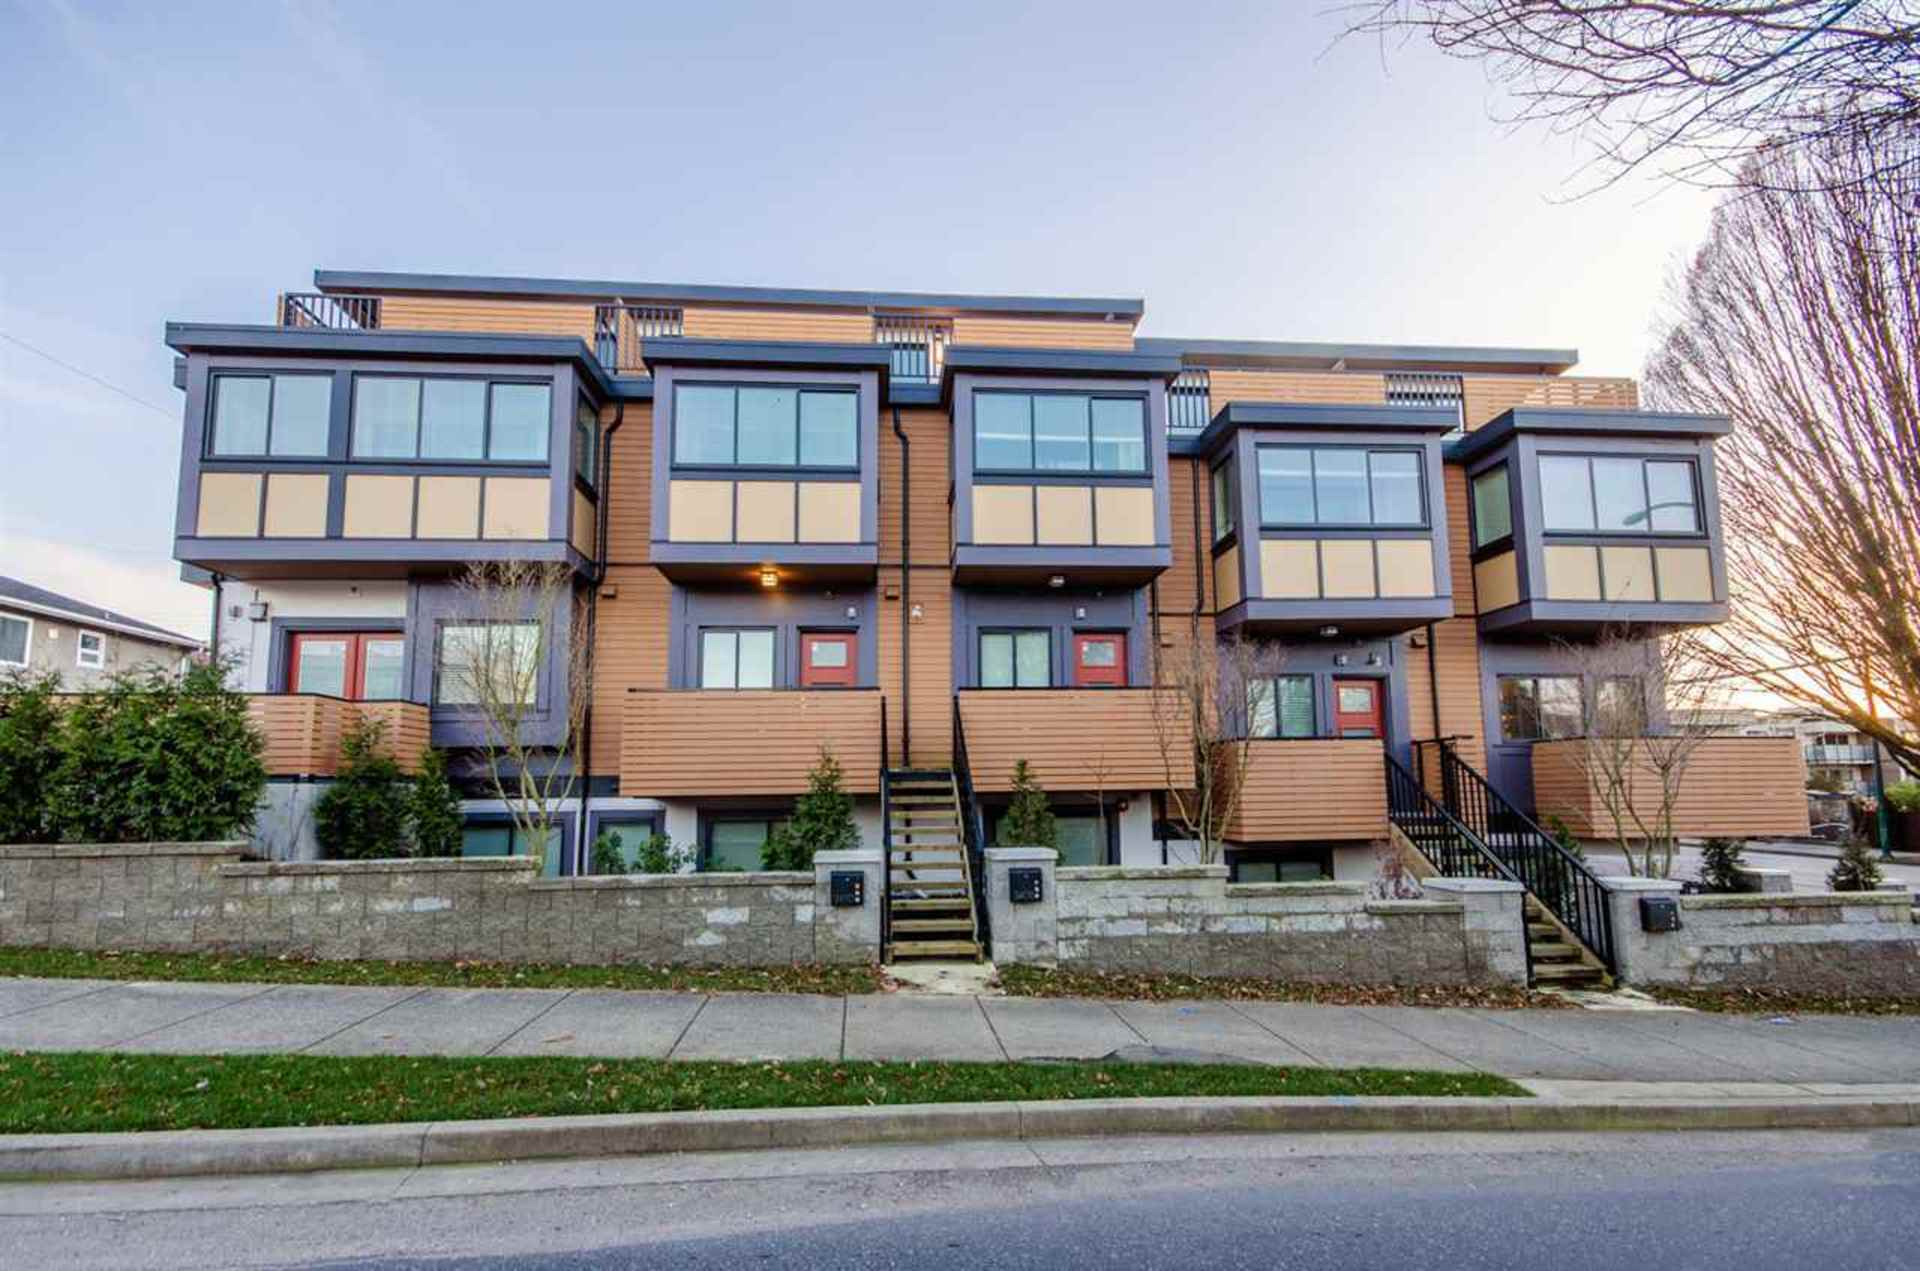 2410-dundas-street-hastings-east-vancouver-east-01 at 2410 Dundas Street, Hastings East, Vancouver East